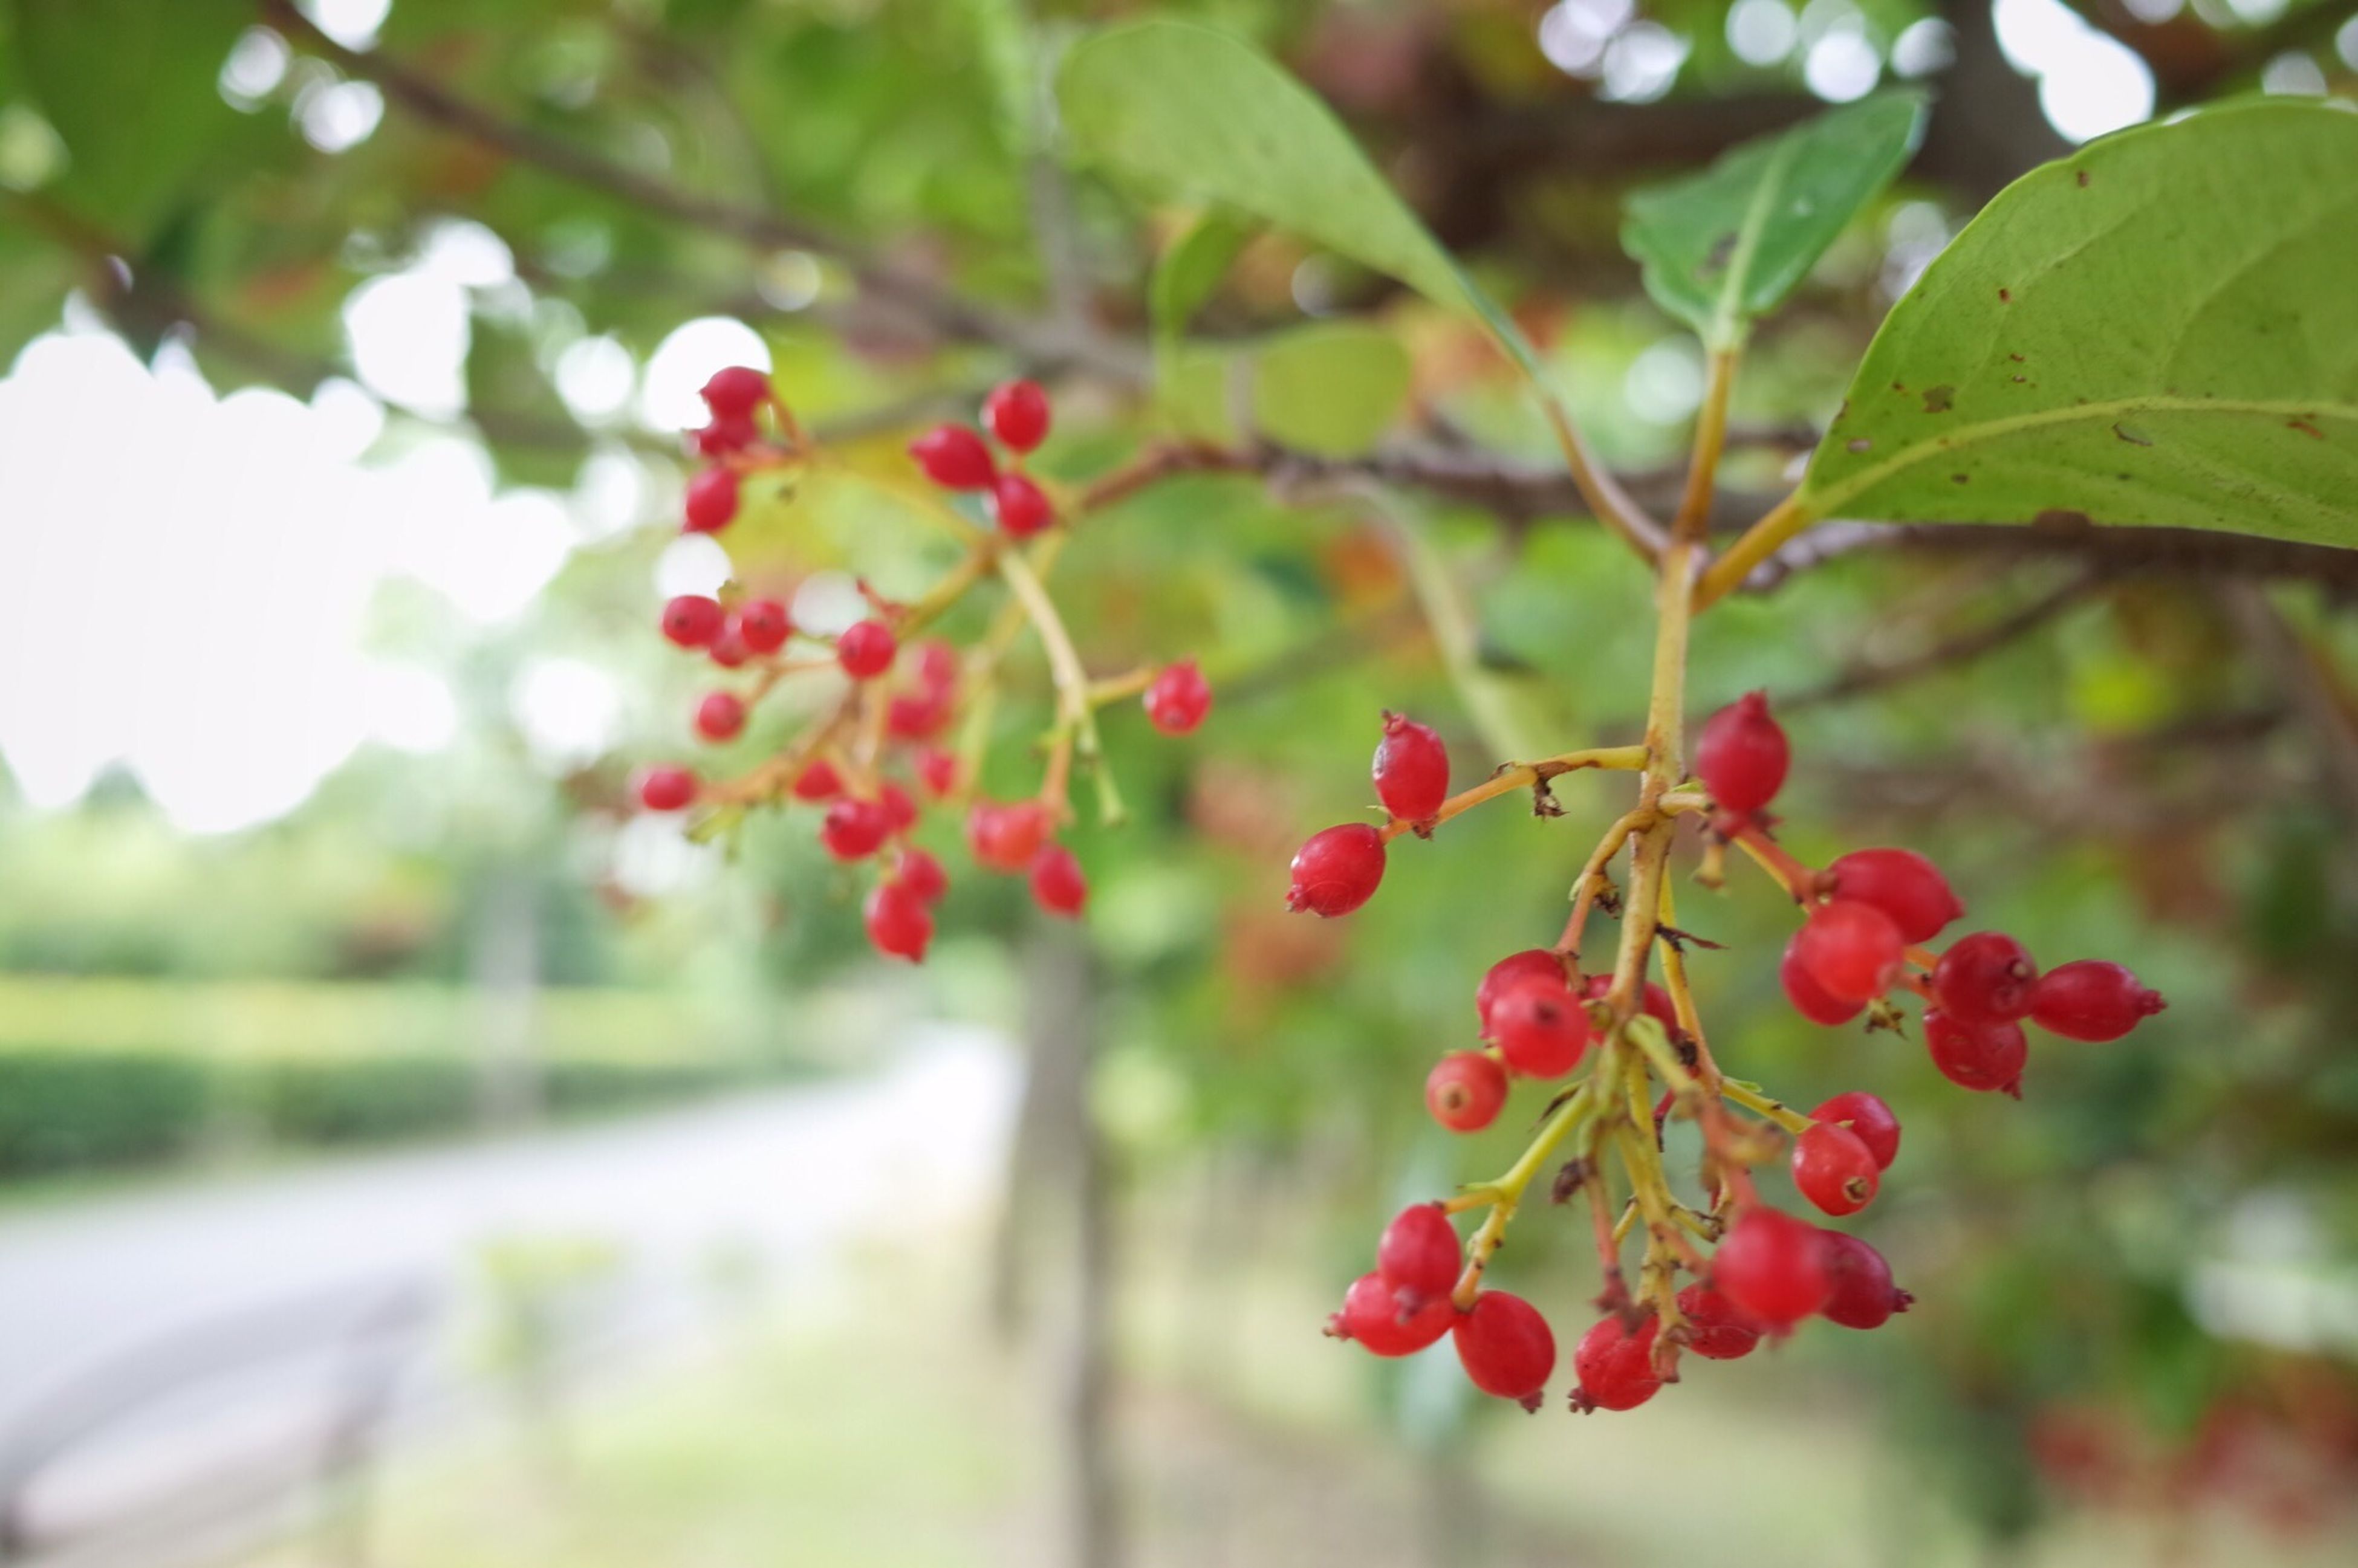 freshness, red, growth, flower, focus on foreground, tree, leaf, branch, nature, close-up, beauty in nature, plant, fruit, fragility, selective focus, day, blossom, bud, outdoors, no people